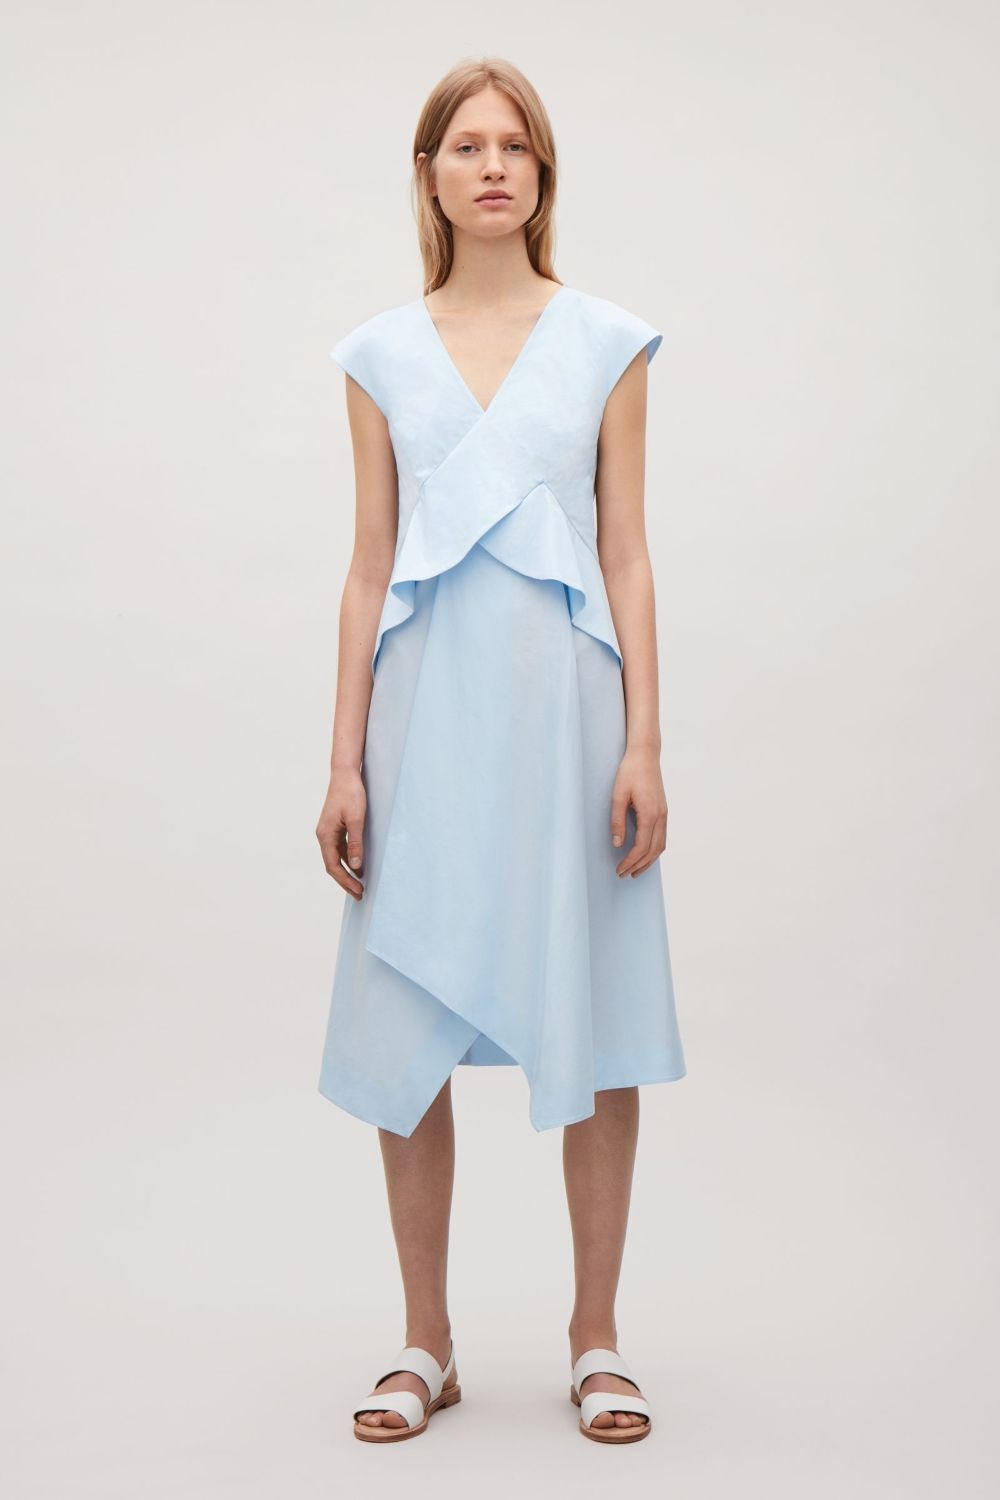 Cos image of draped capsleeve dress in sky blue style